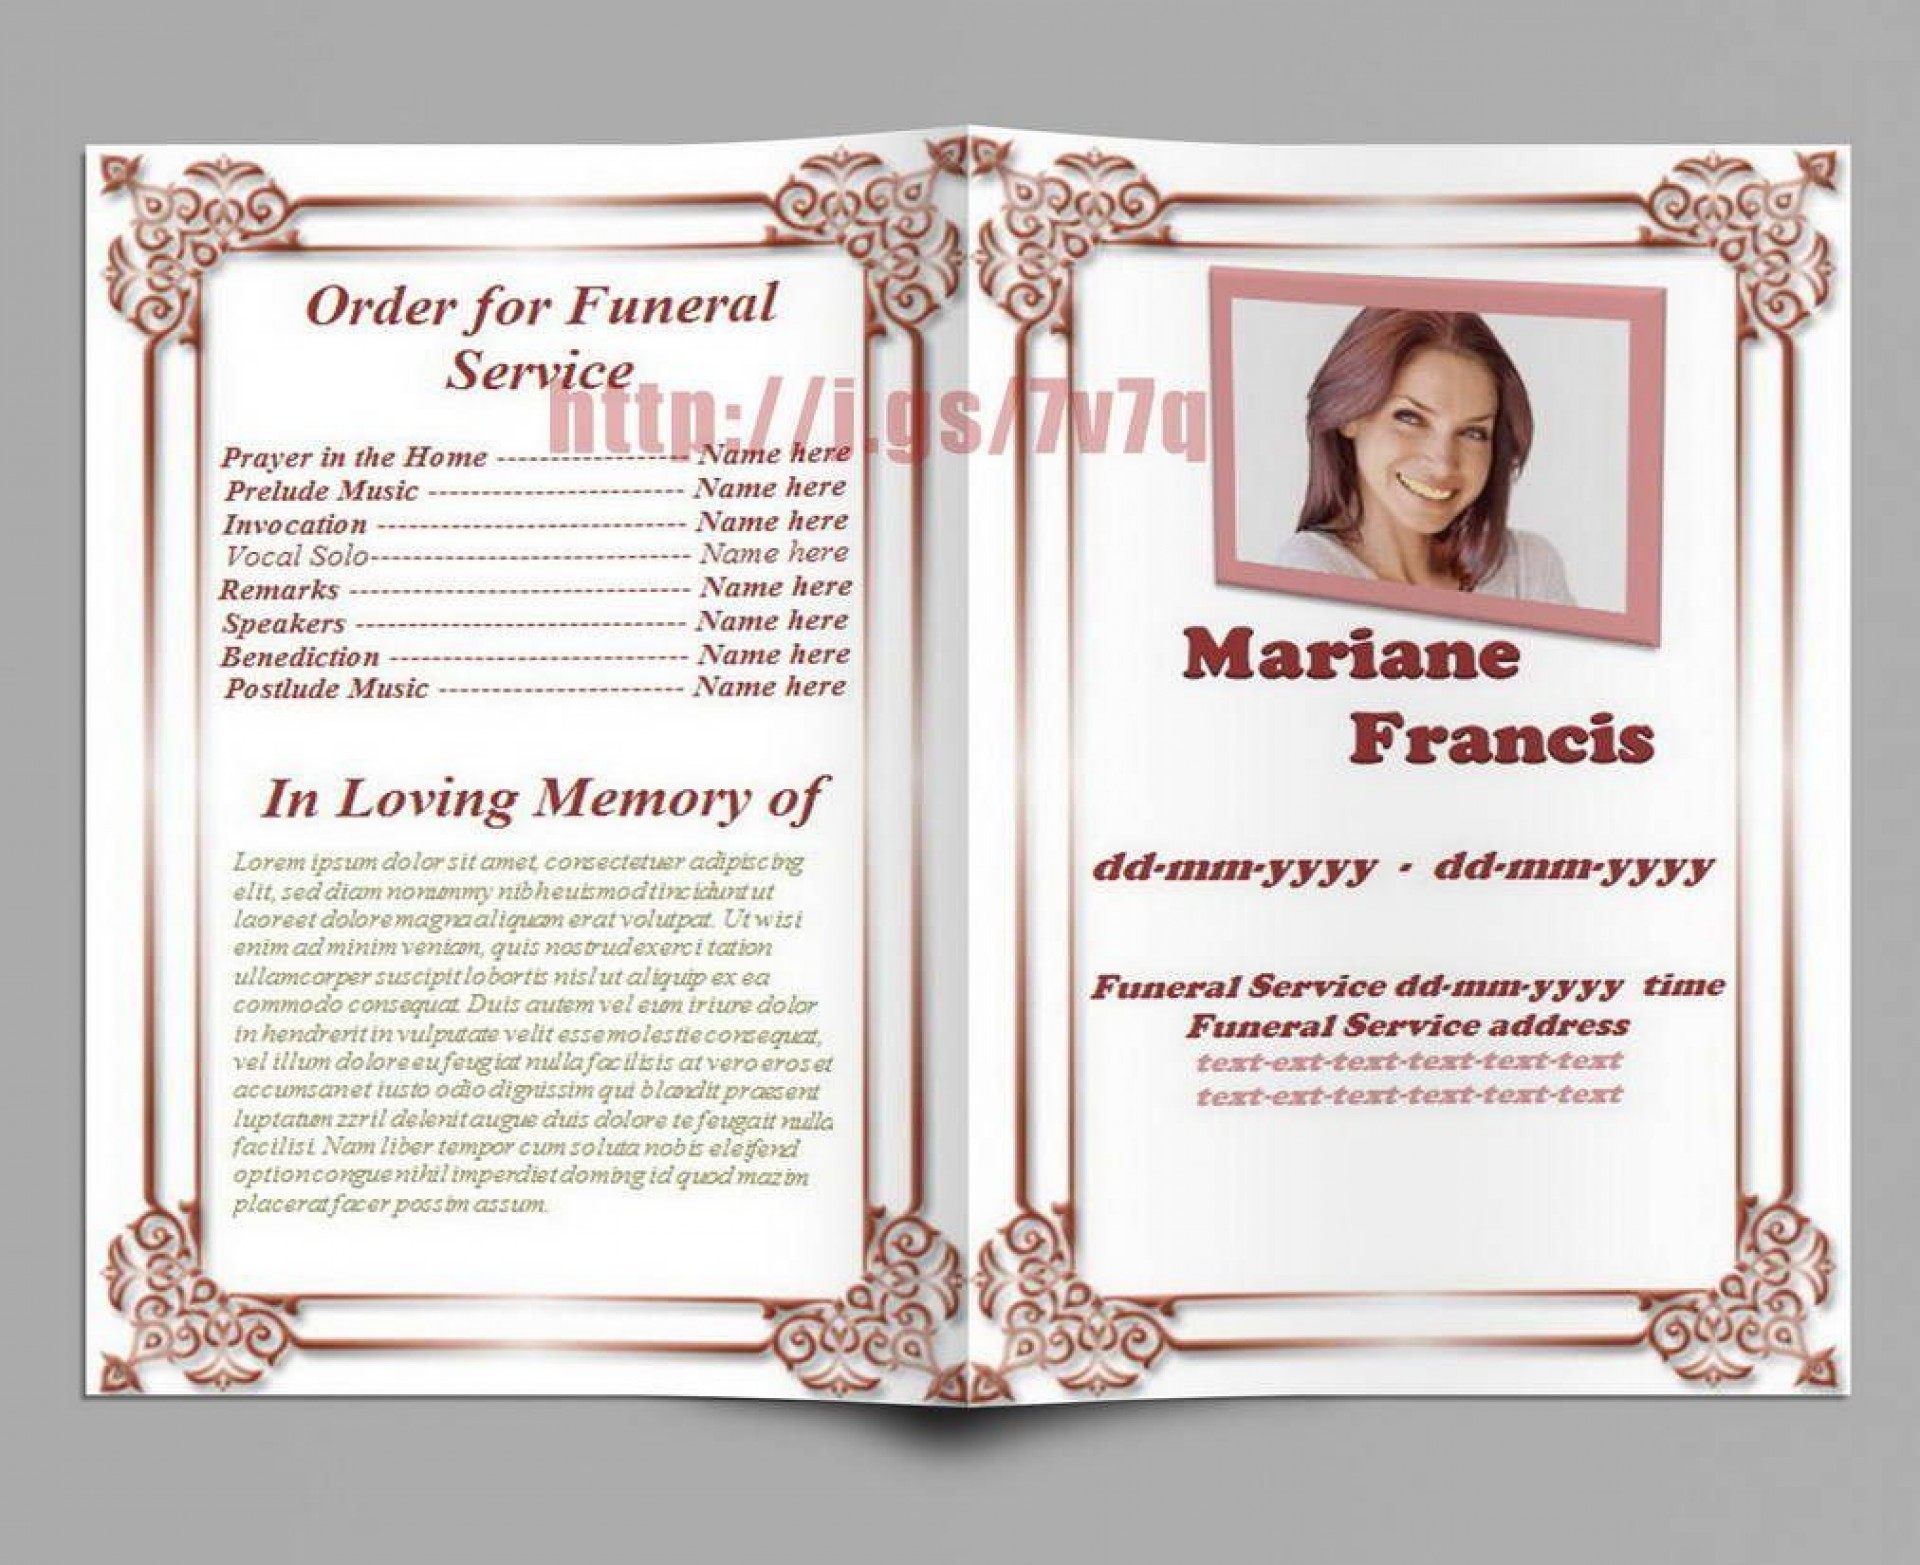 004 Awesome Funeral Program Template Free High Resolution  Printable Design1920